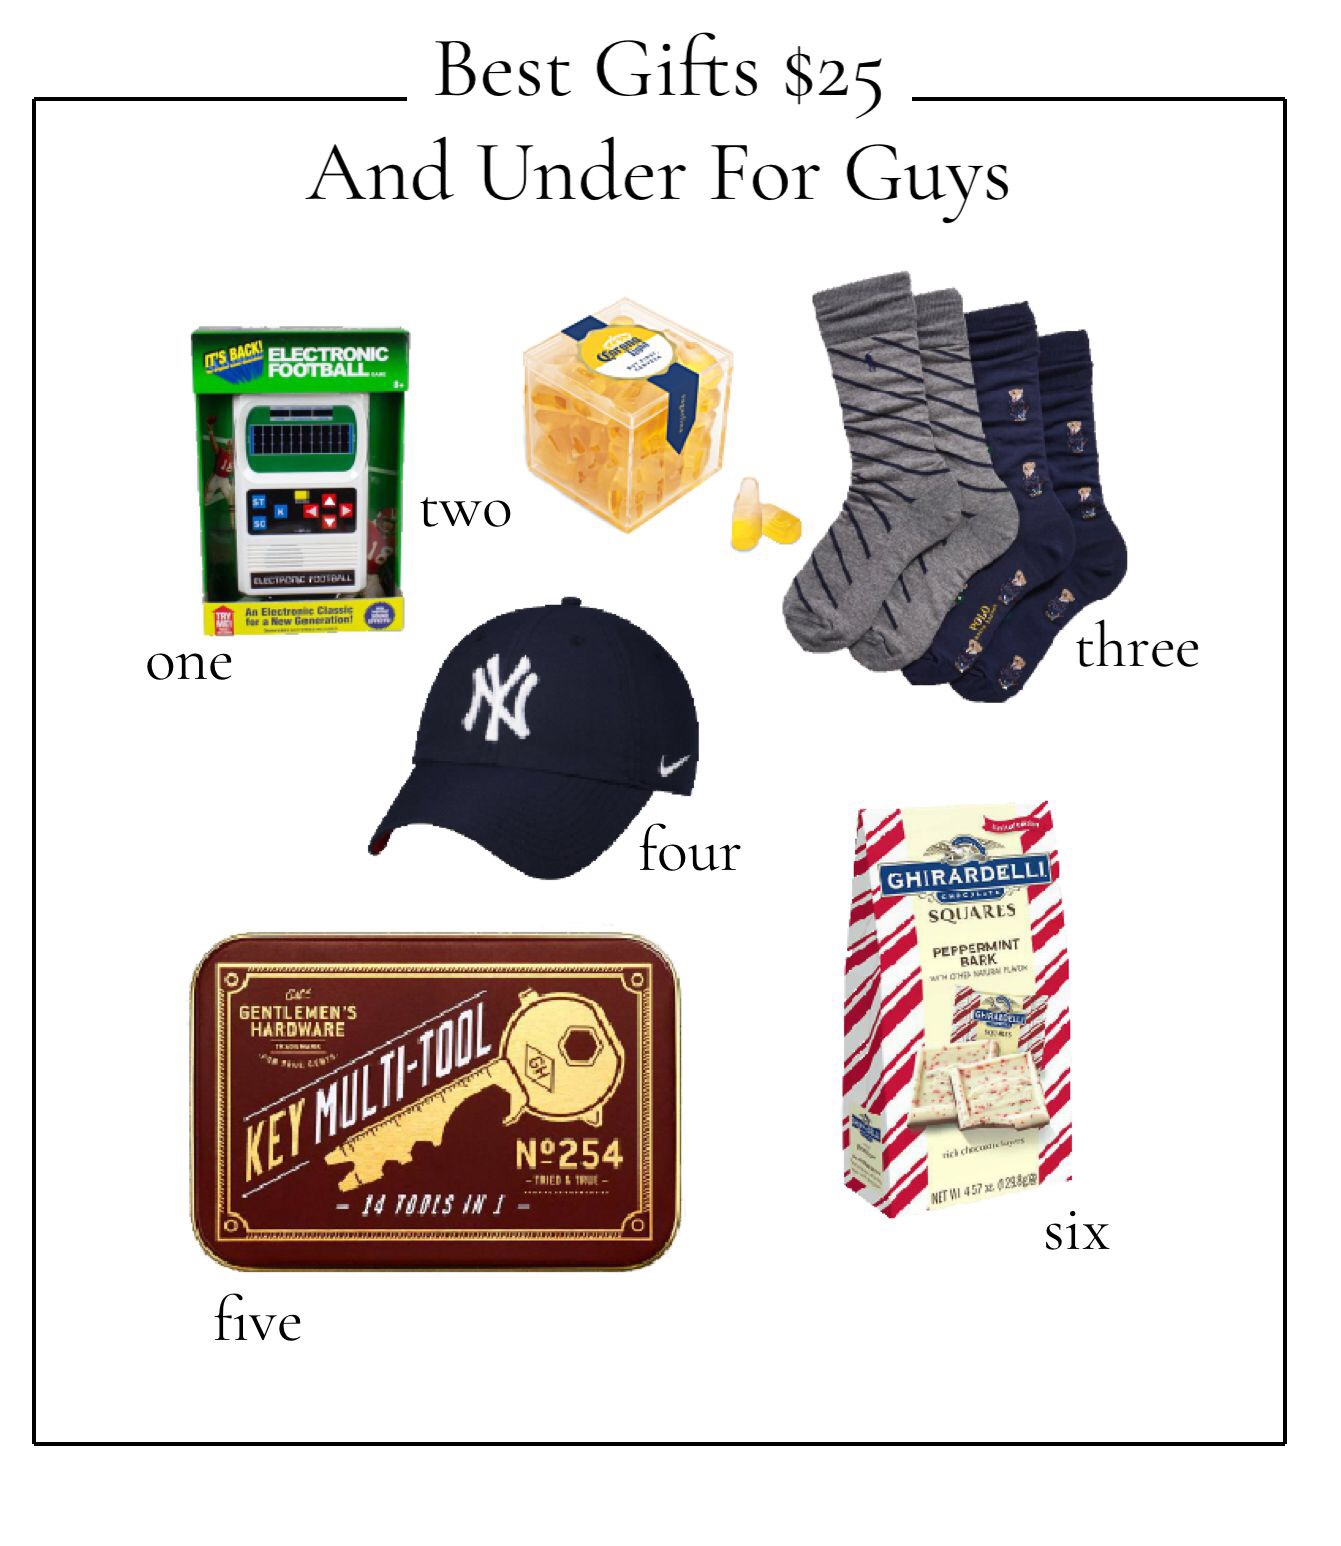 Best Gifts $25 and under for guys